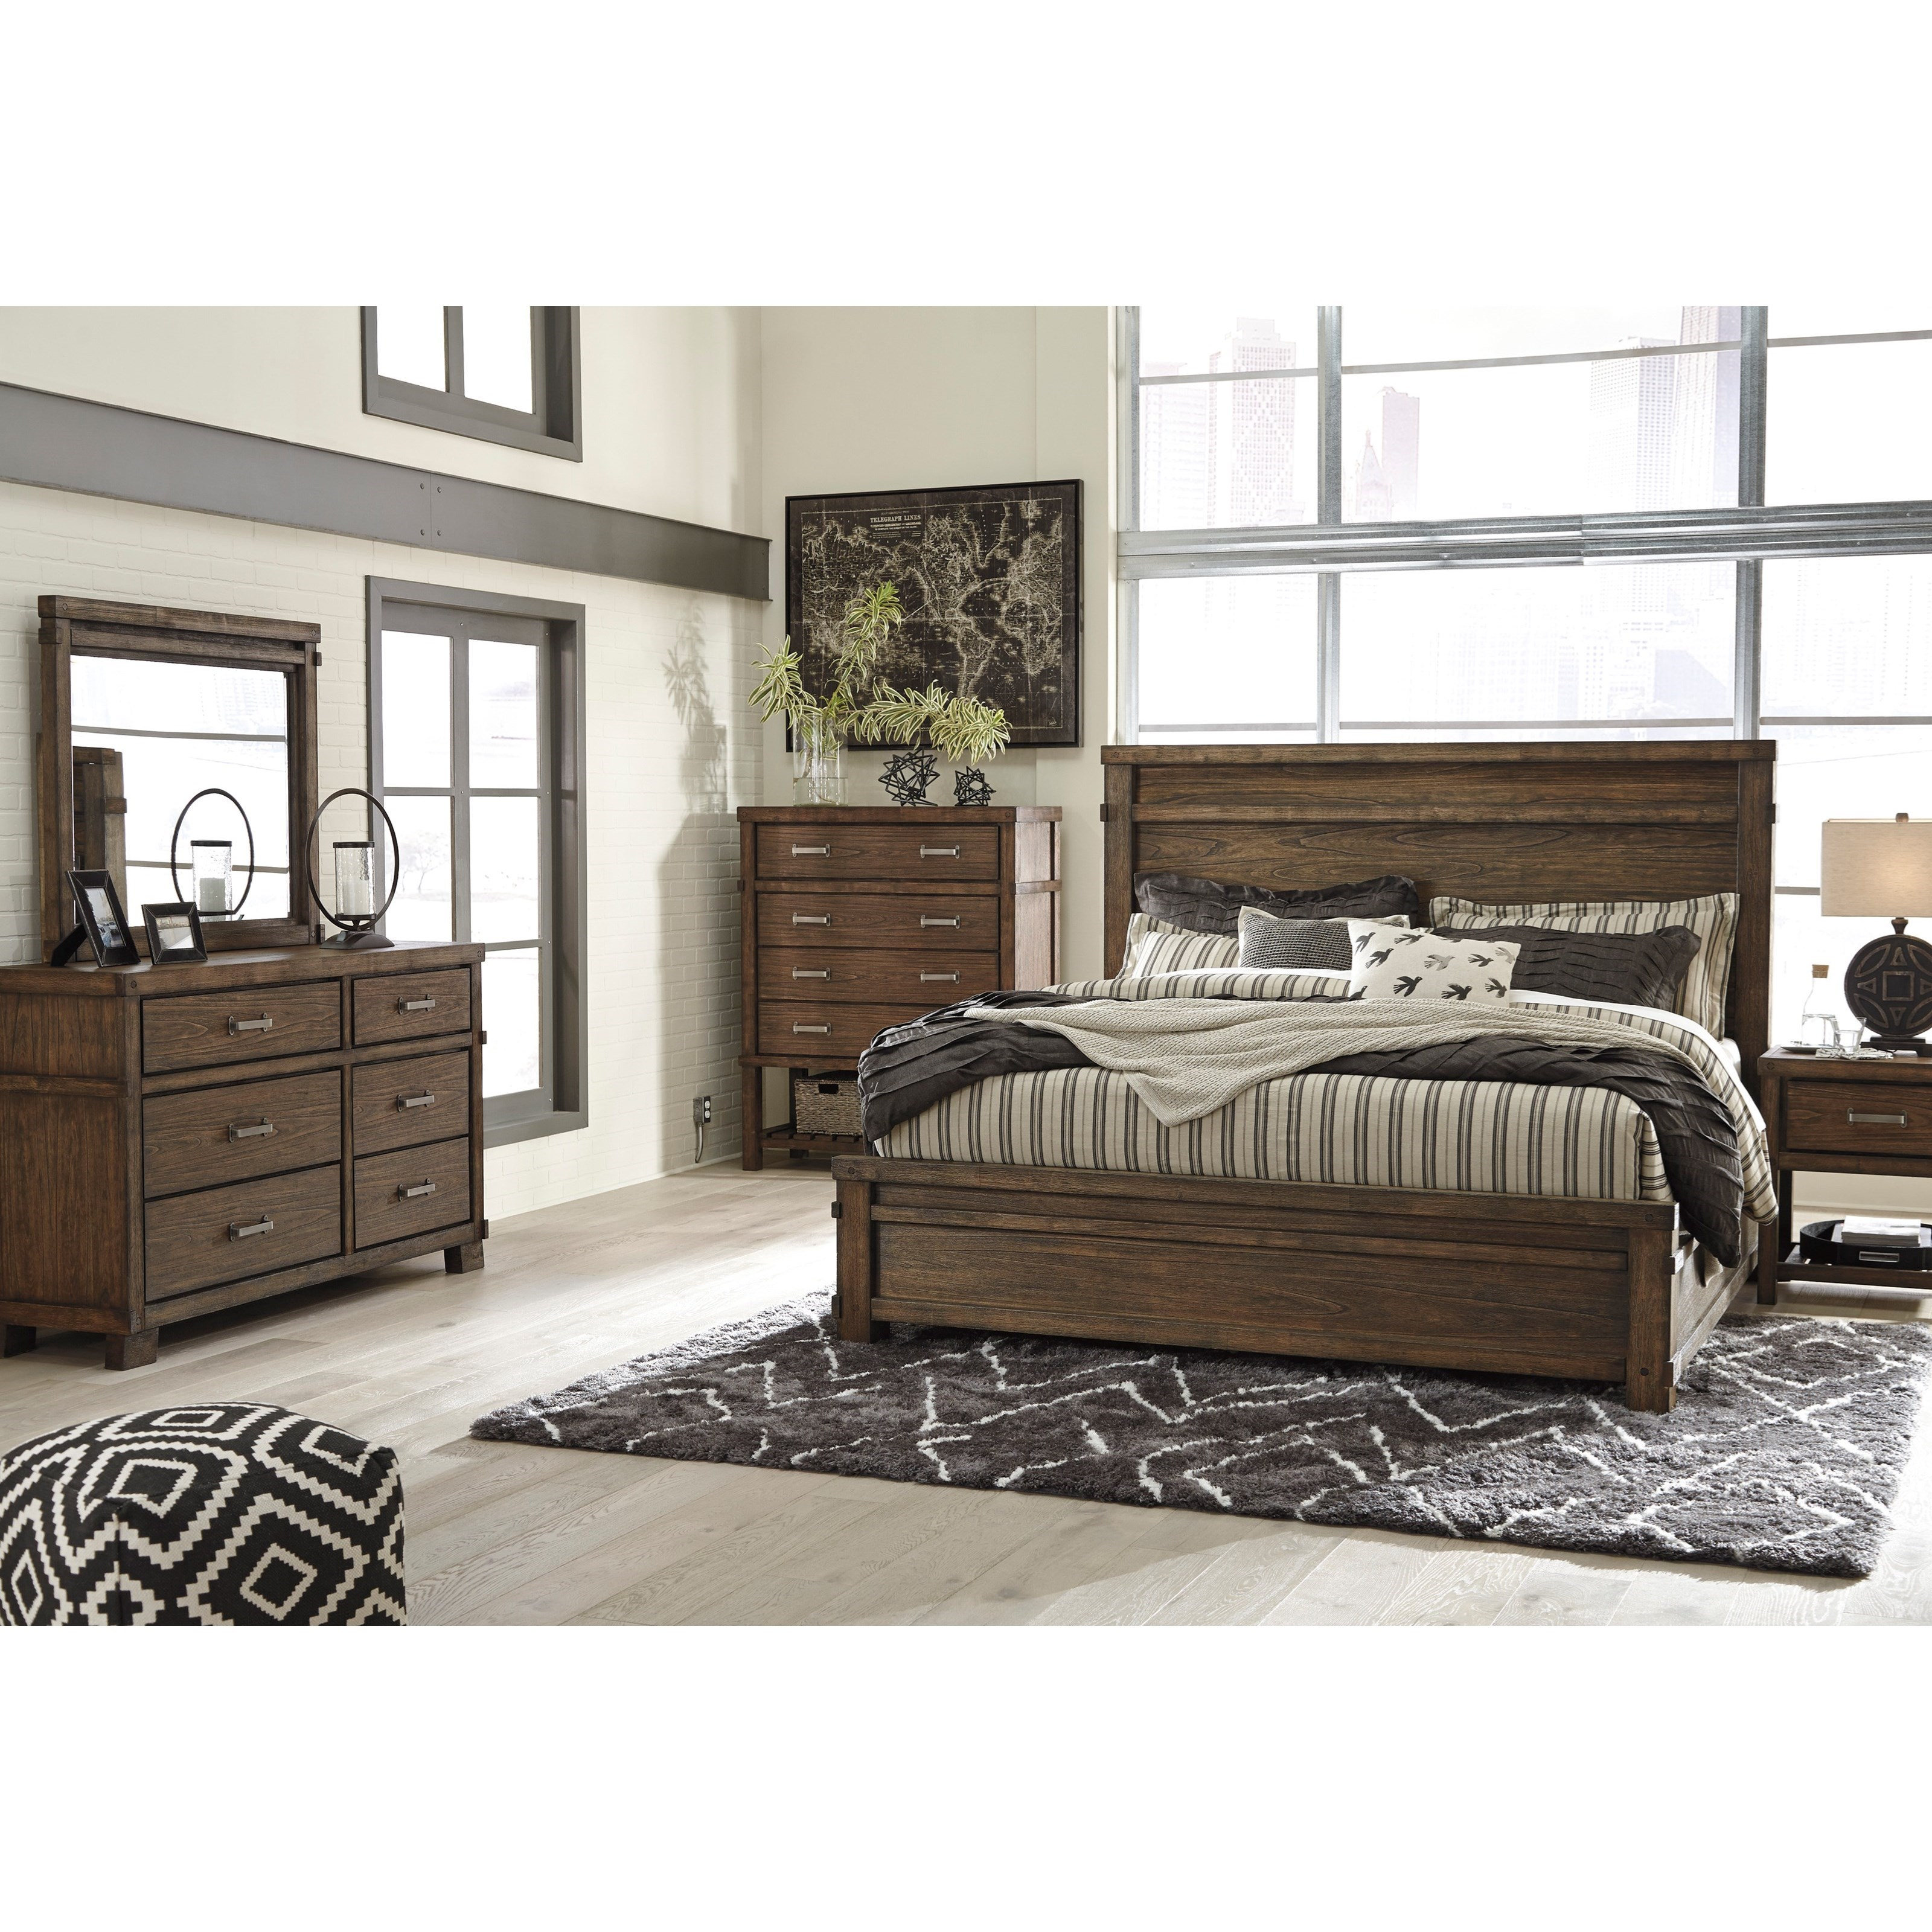 Signature Design By Ashley Leystone Comtemporary Dresser With Beveled Mirror Household